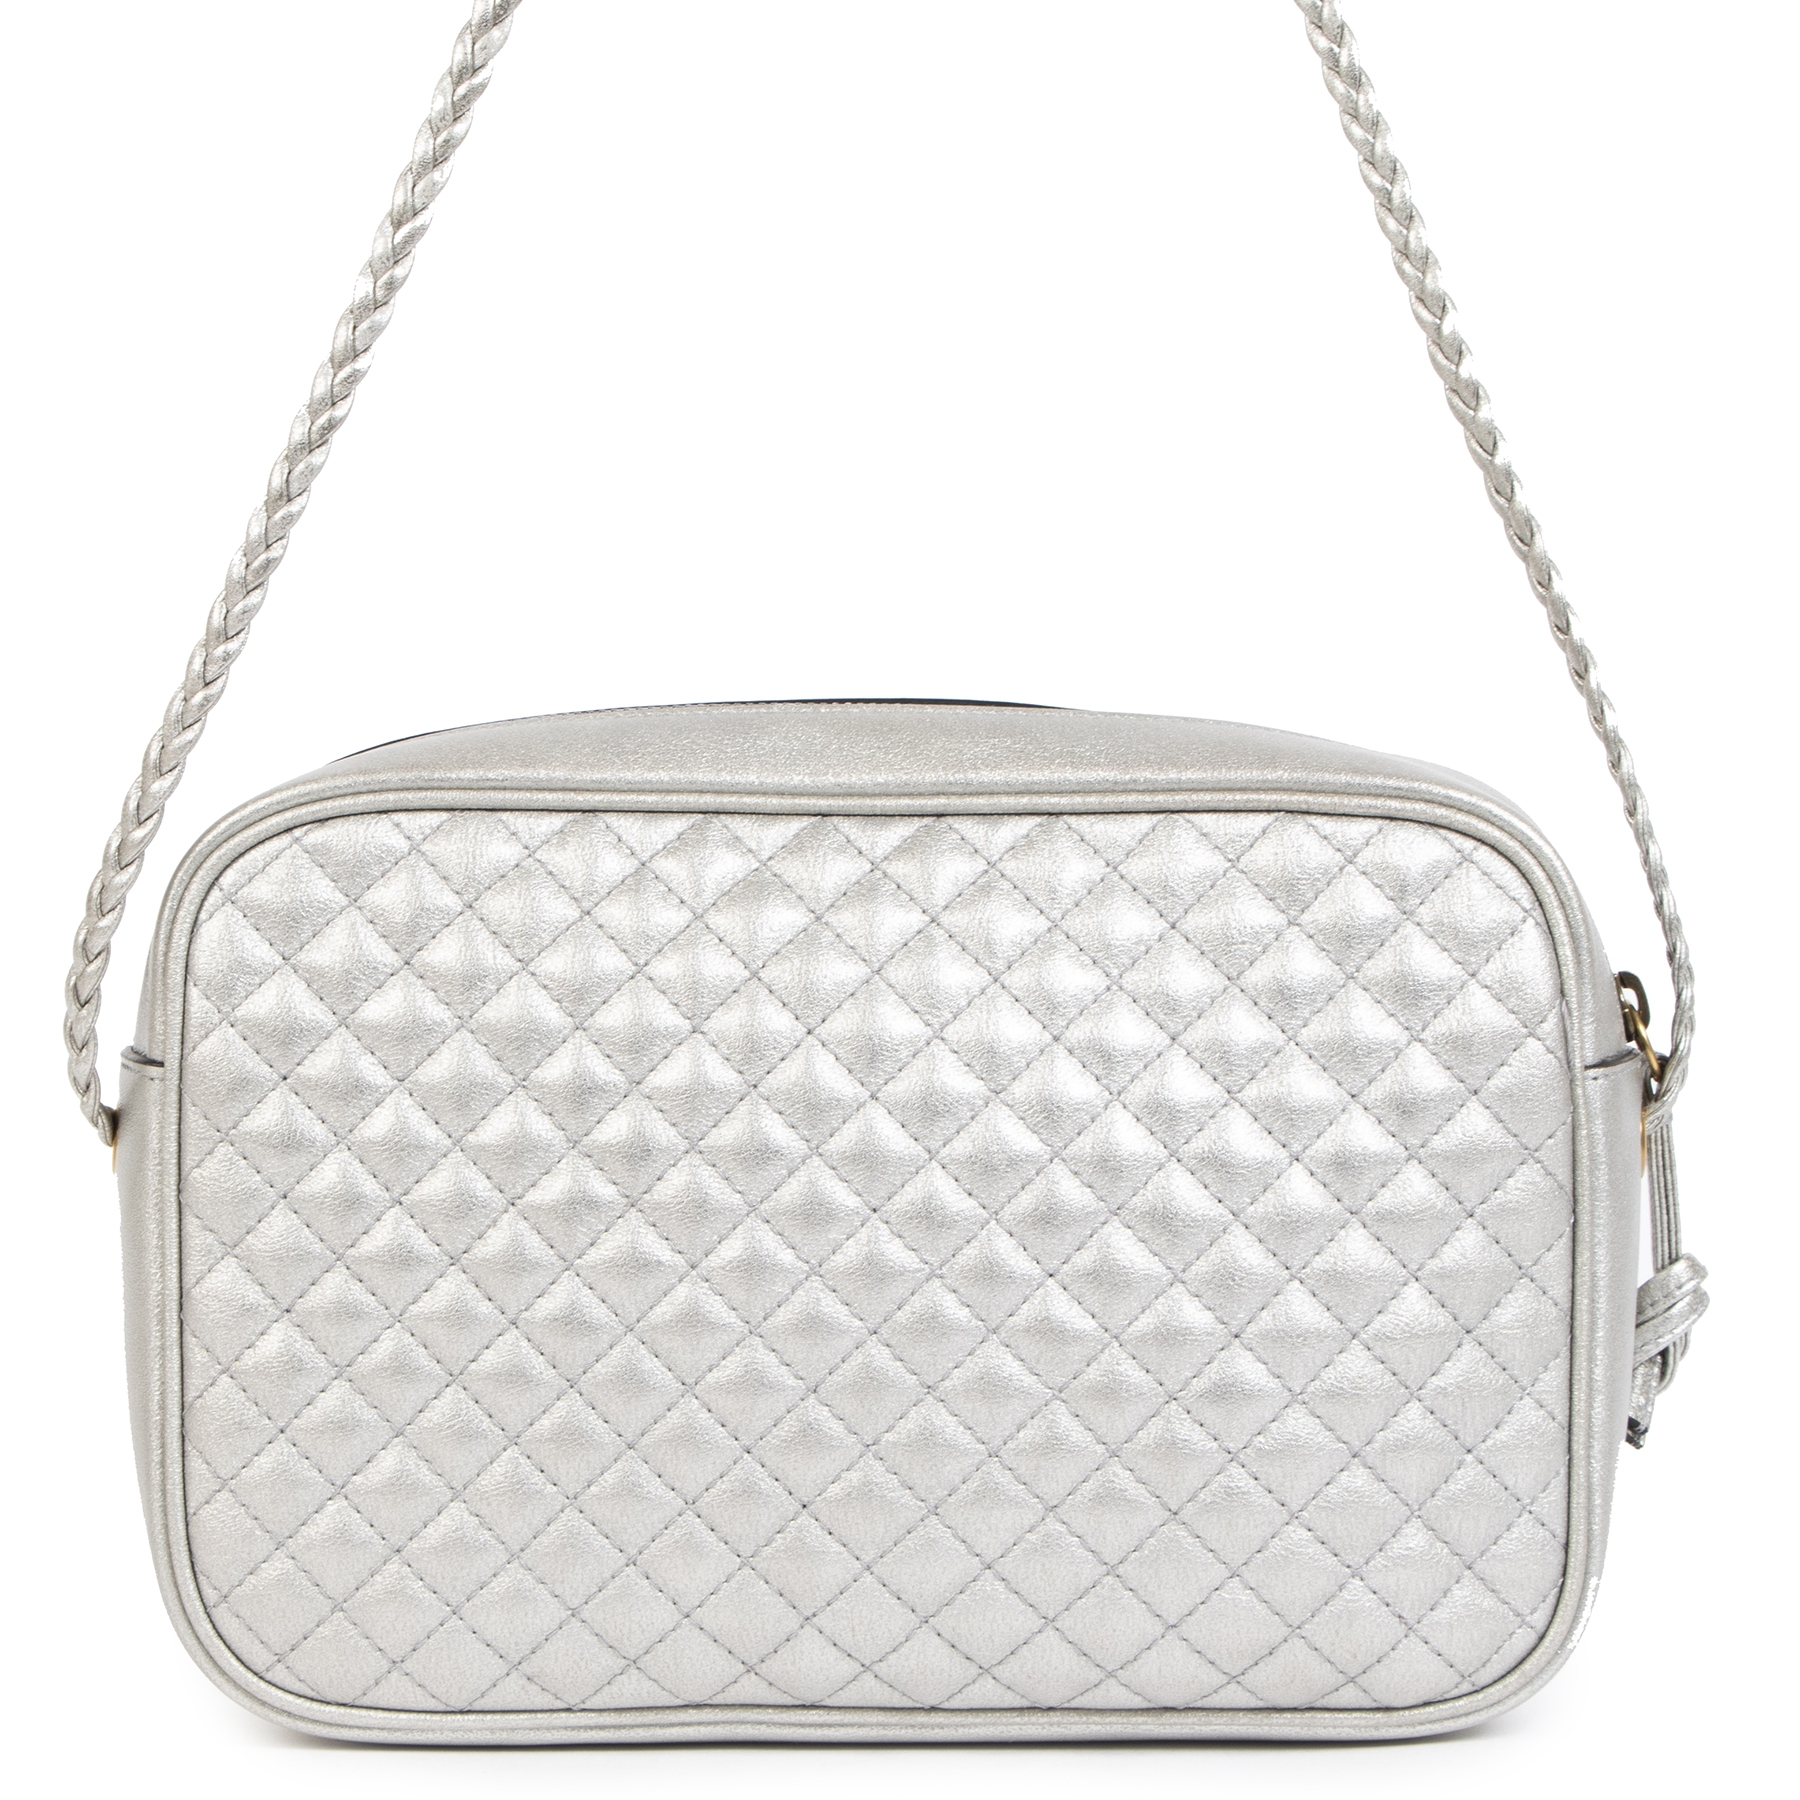 We buy and sell 100% authentic Gucci Silver Quilted Web Bag